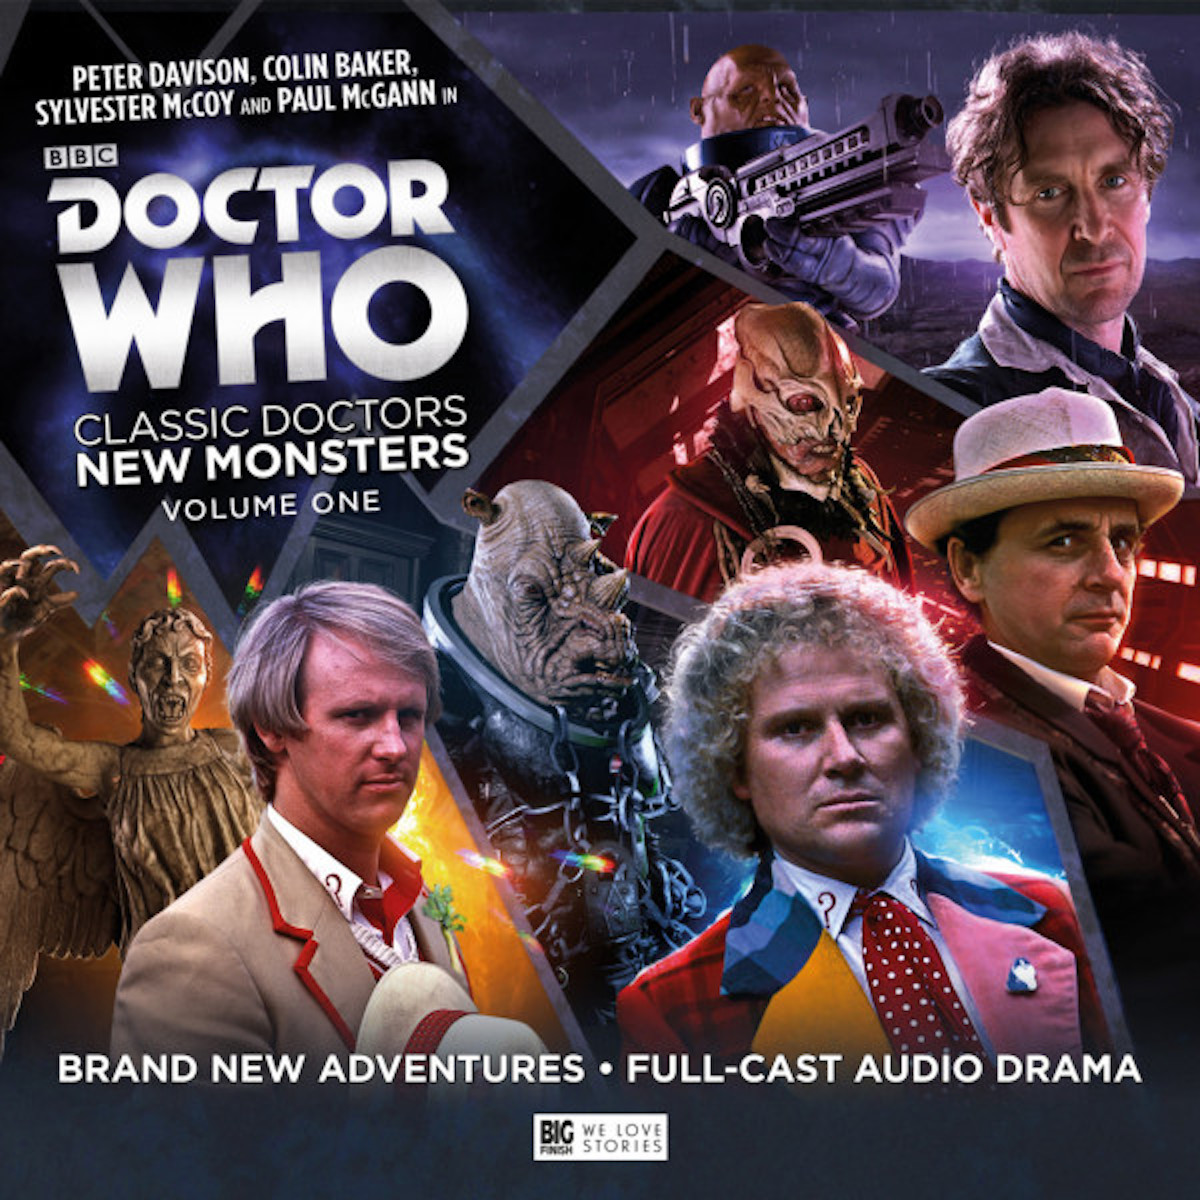 Classic Doctors New Monsters